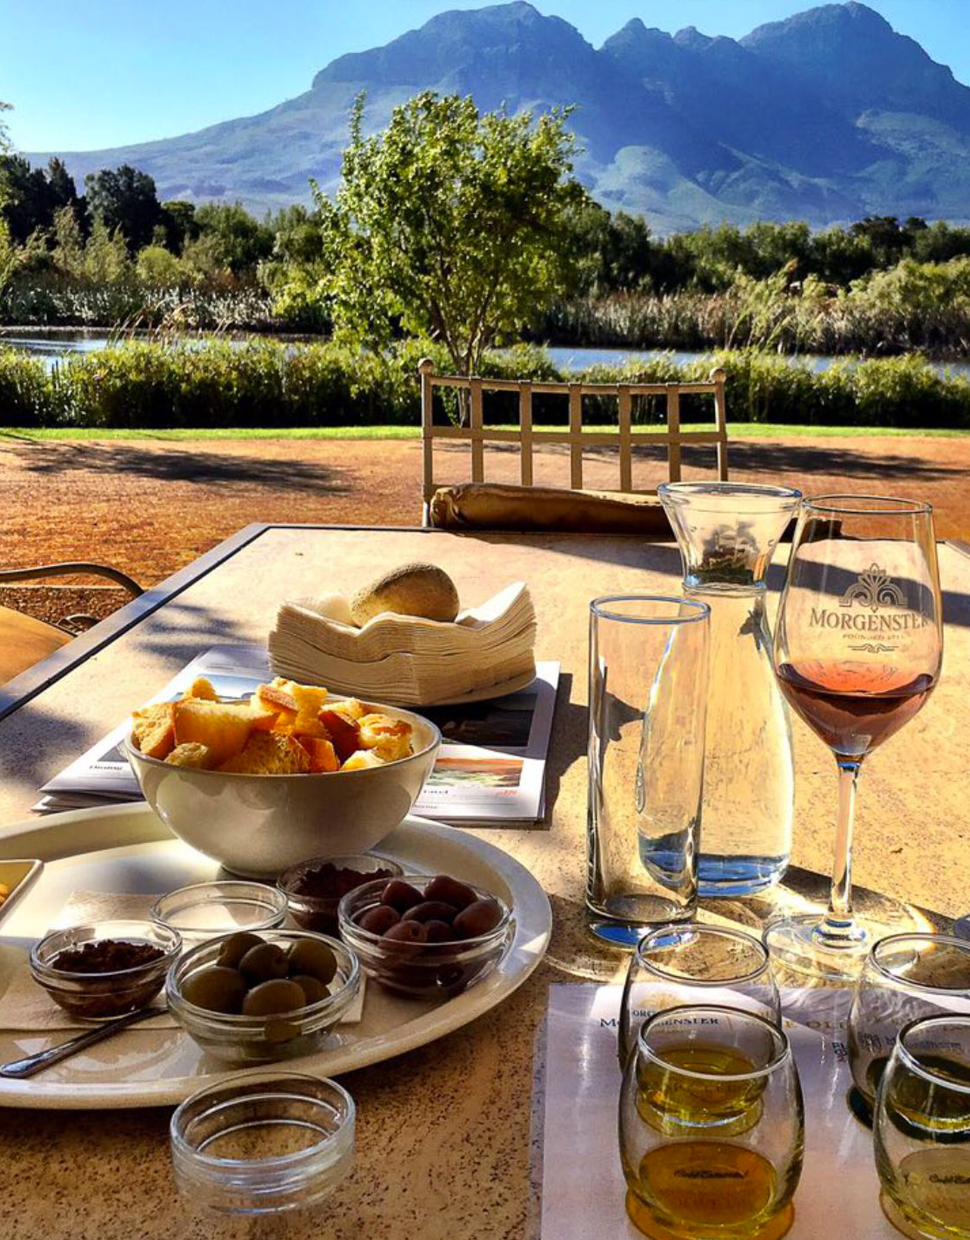 GOURMET-FOOD-&-WINE-TOUR-IN-STELLENBOSCH.jpg